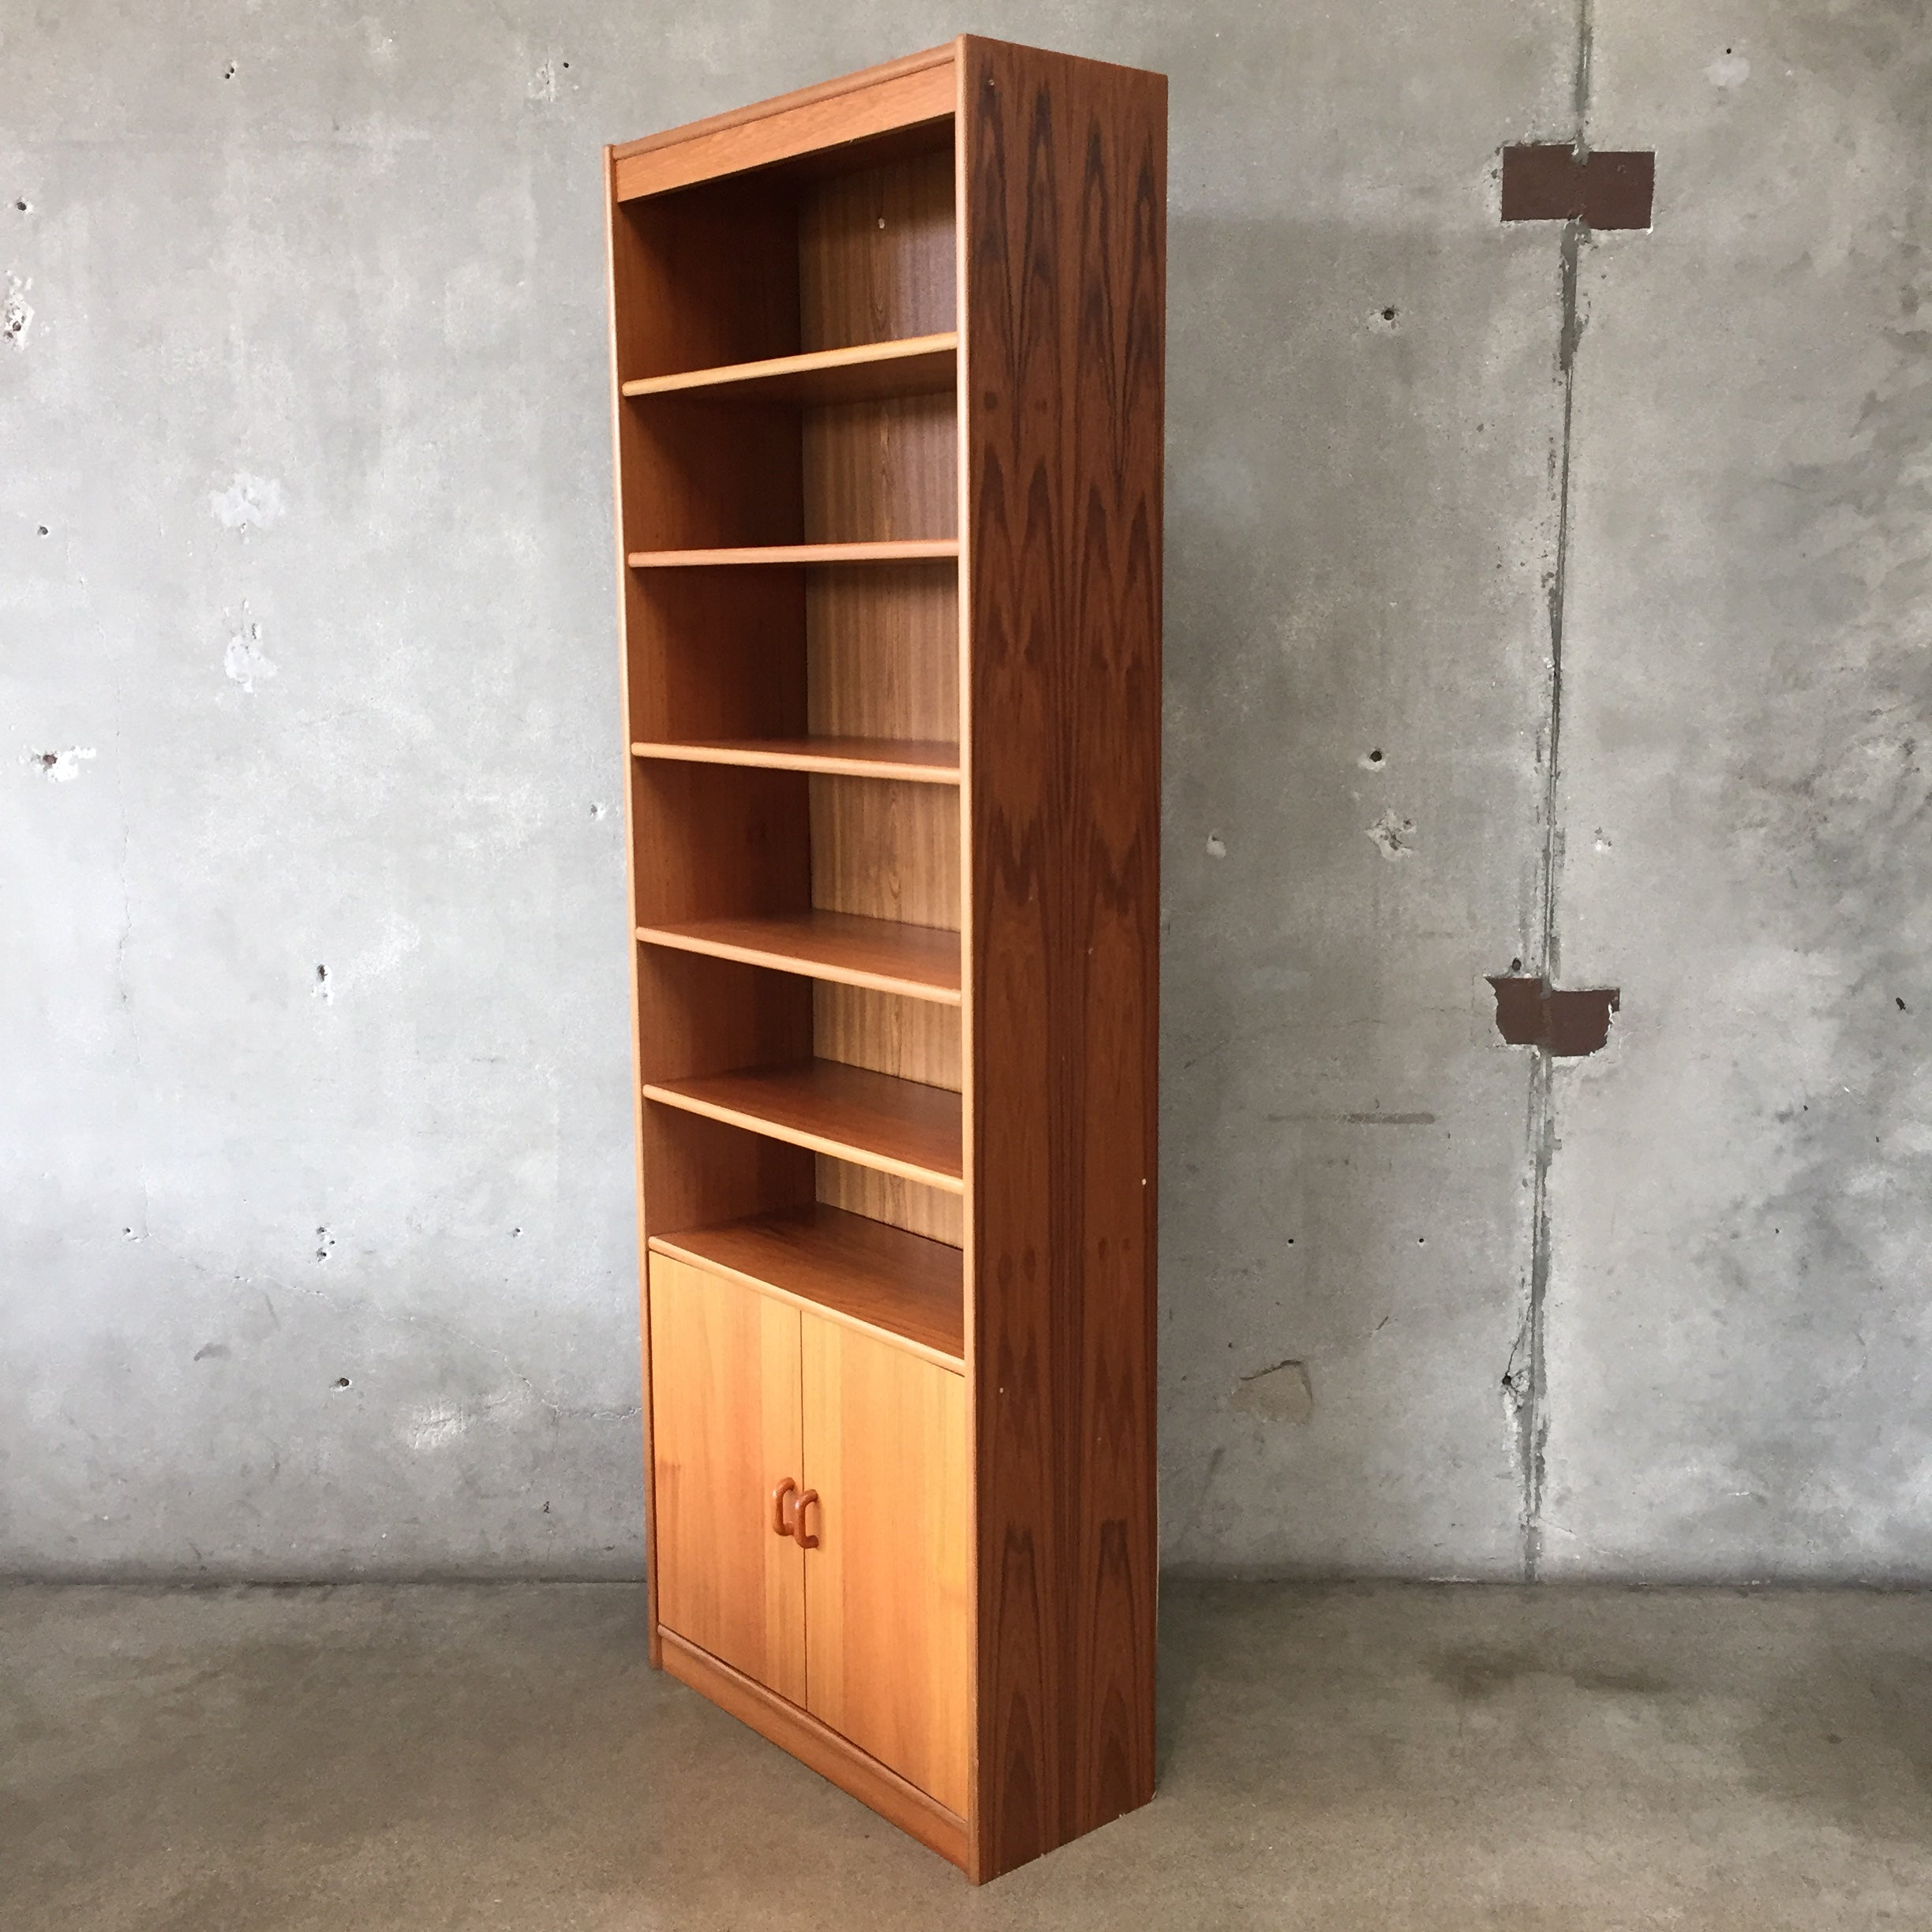 com with doors getpointapp largew bookcase bookcases modern wood